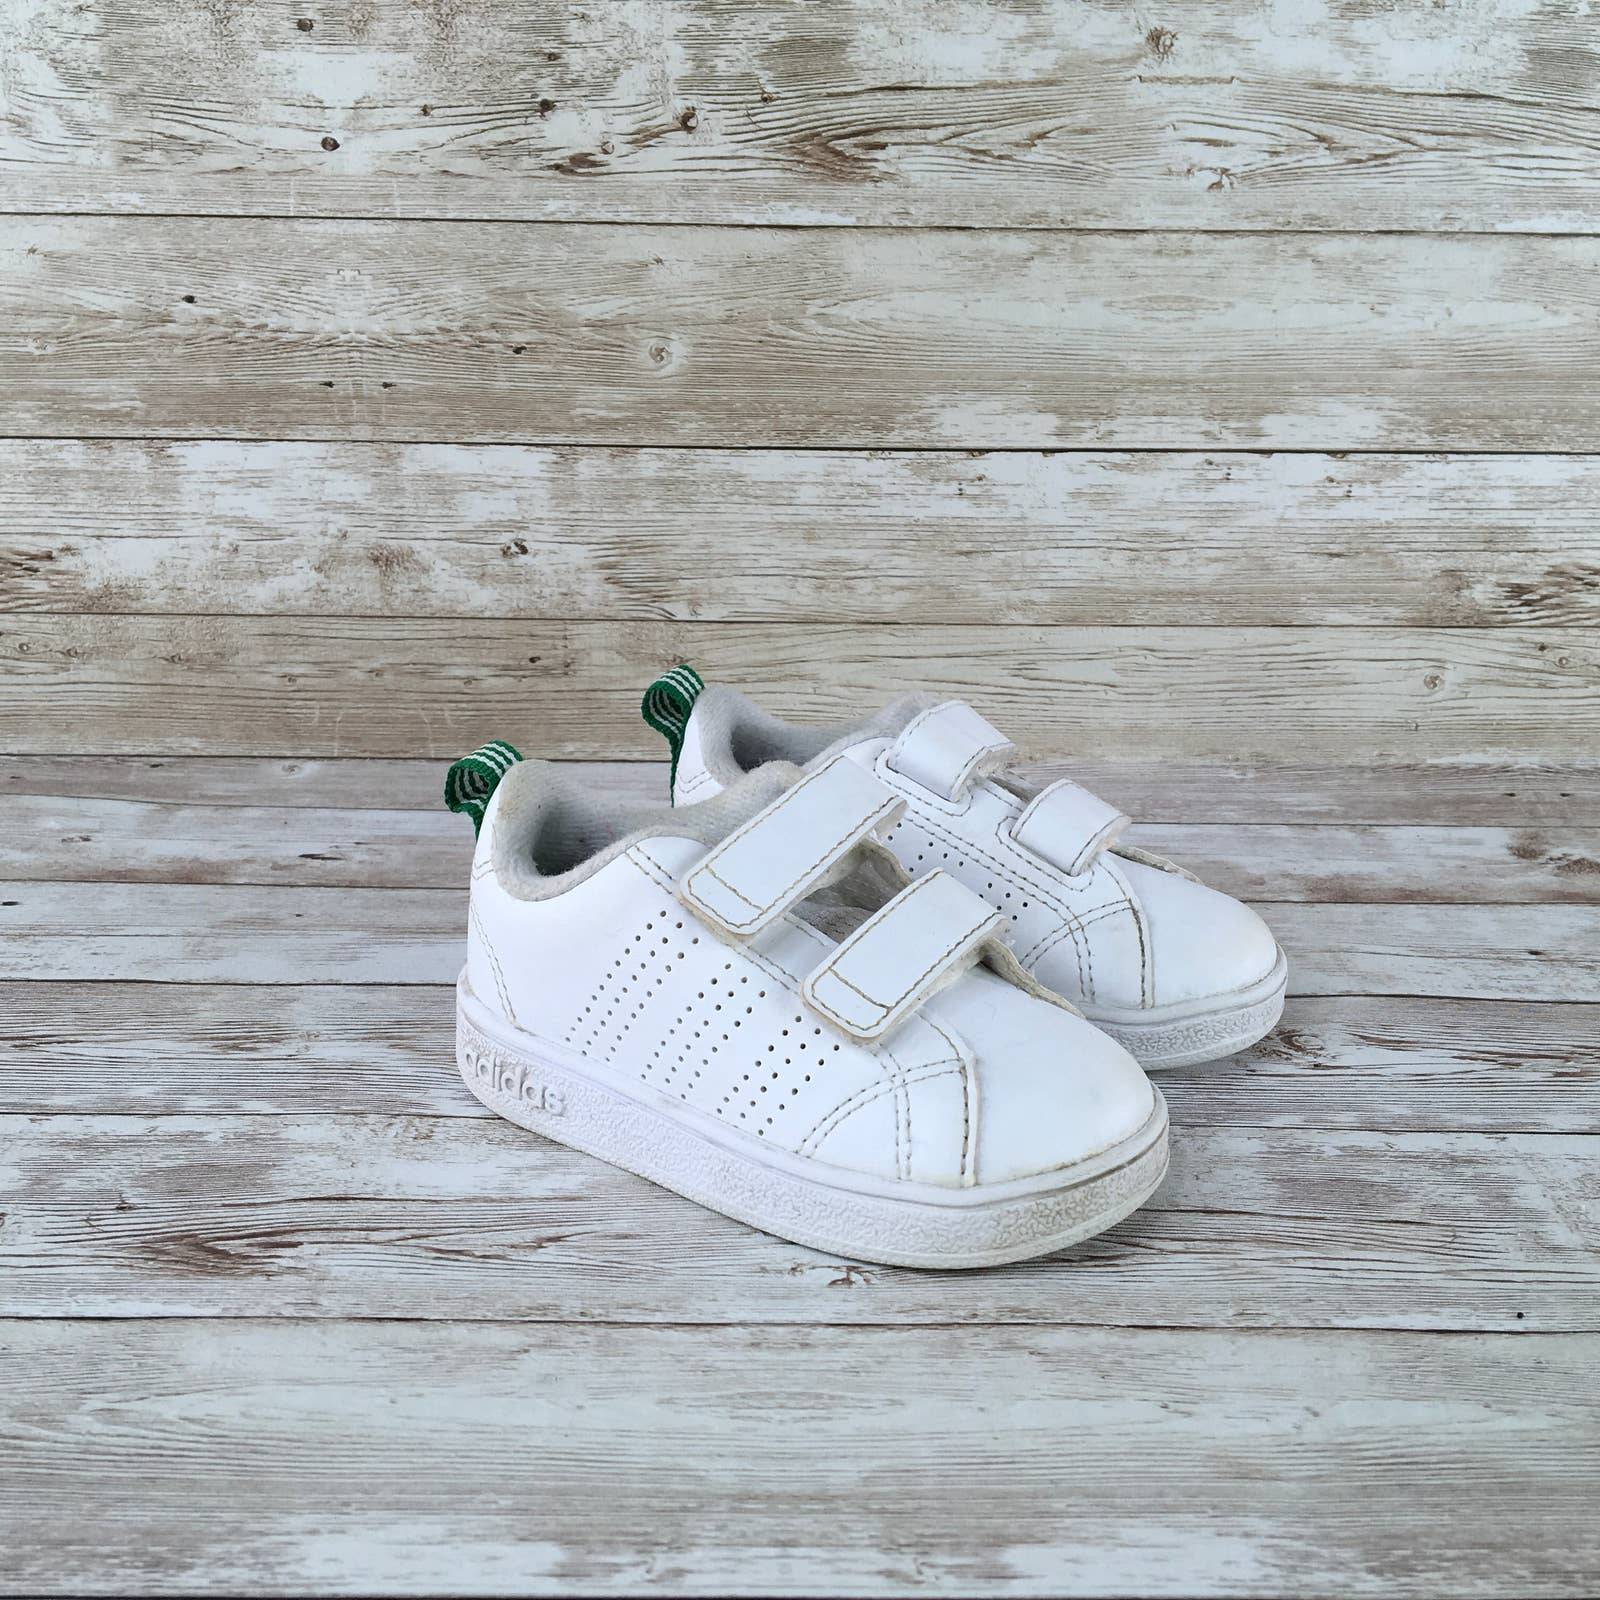 Adidas Advantage VS Clean Size 5C White